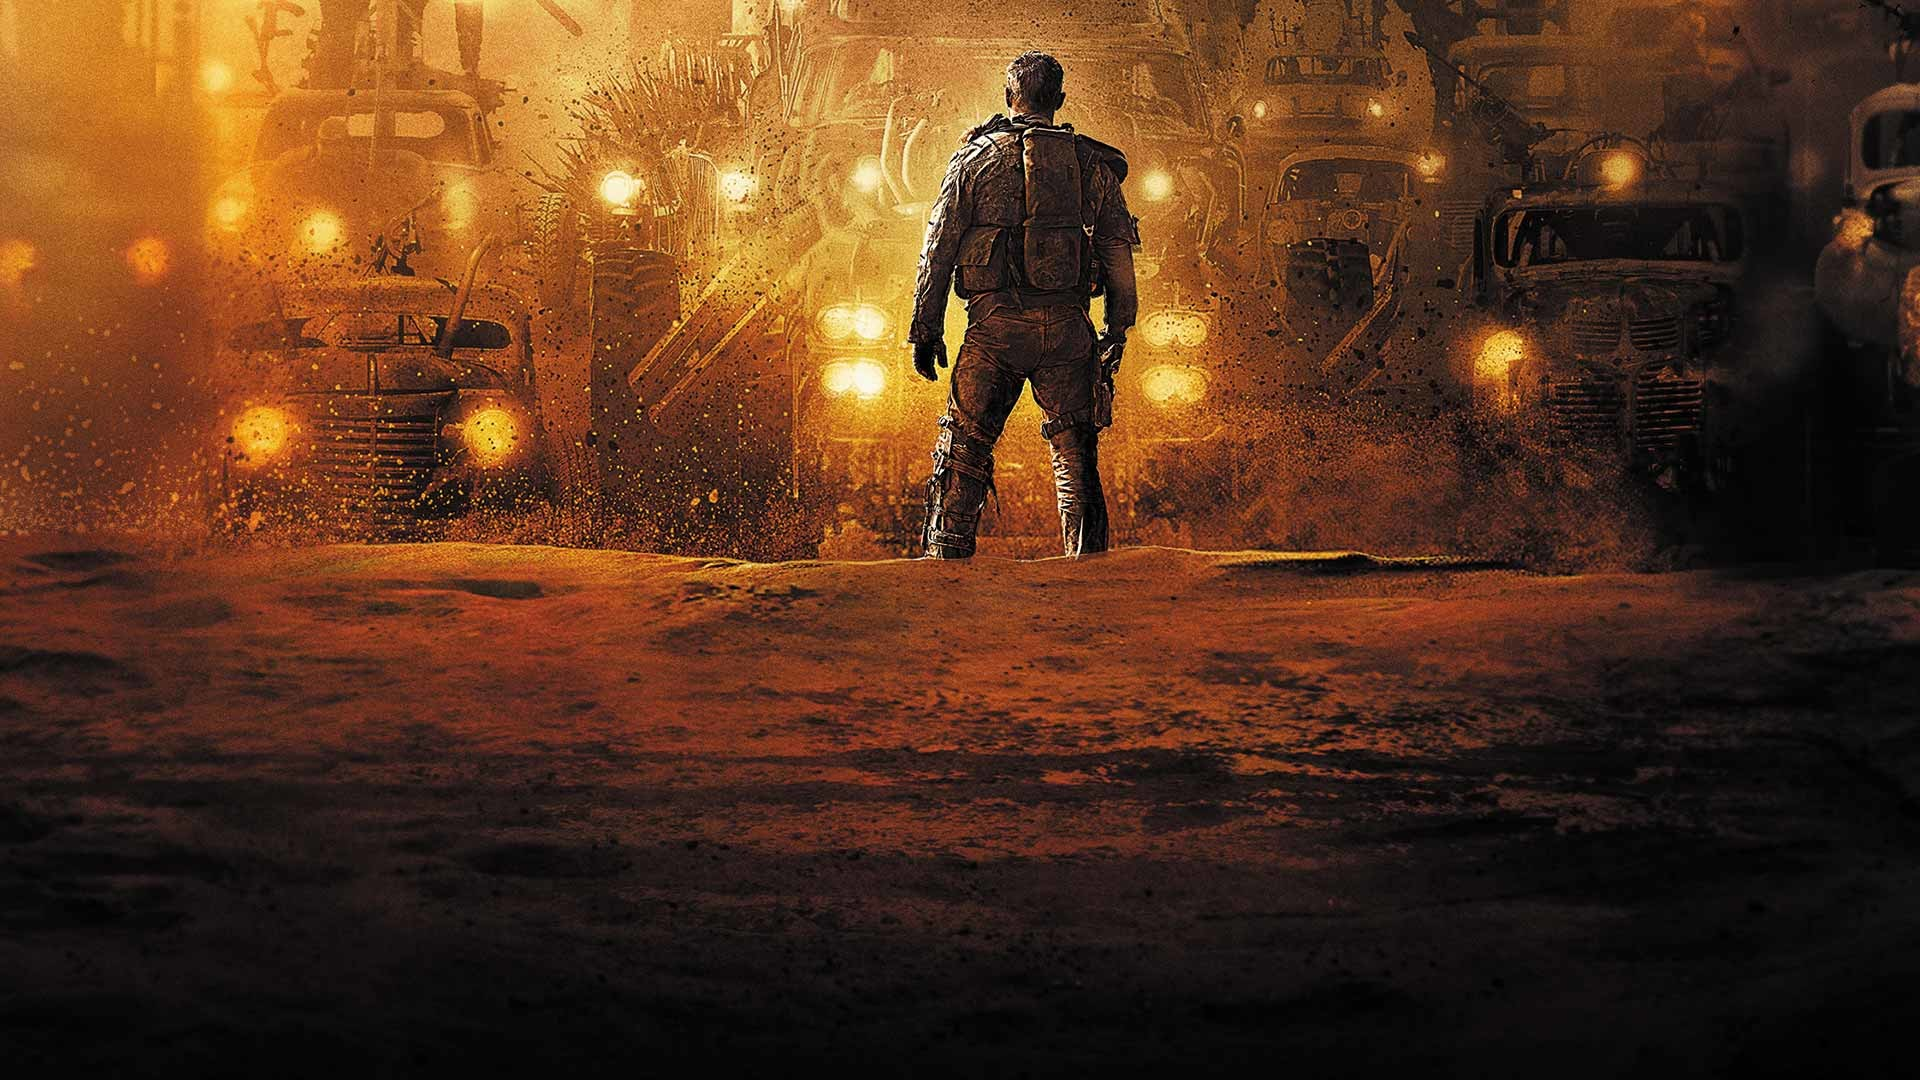 1920x1080 Mad Max: Fury Road widescreen for desktop